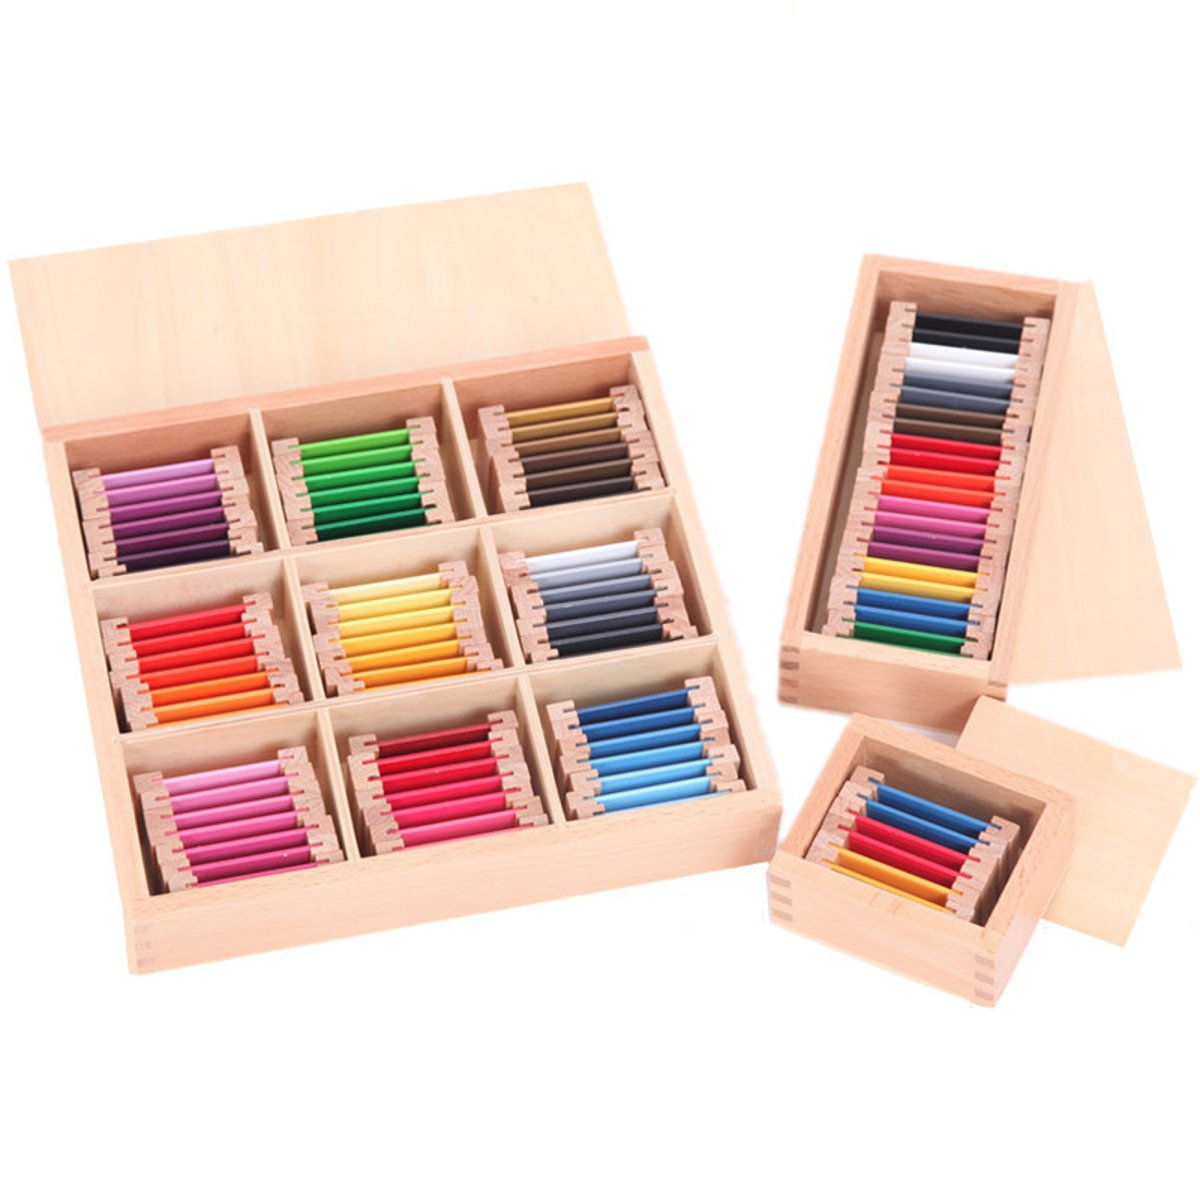 Wooden Montessori Sensorial Teaching Tool Color Tablet Educational School Learning Toy Gift